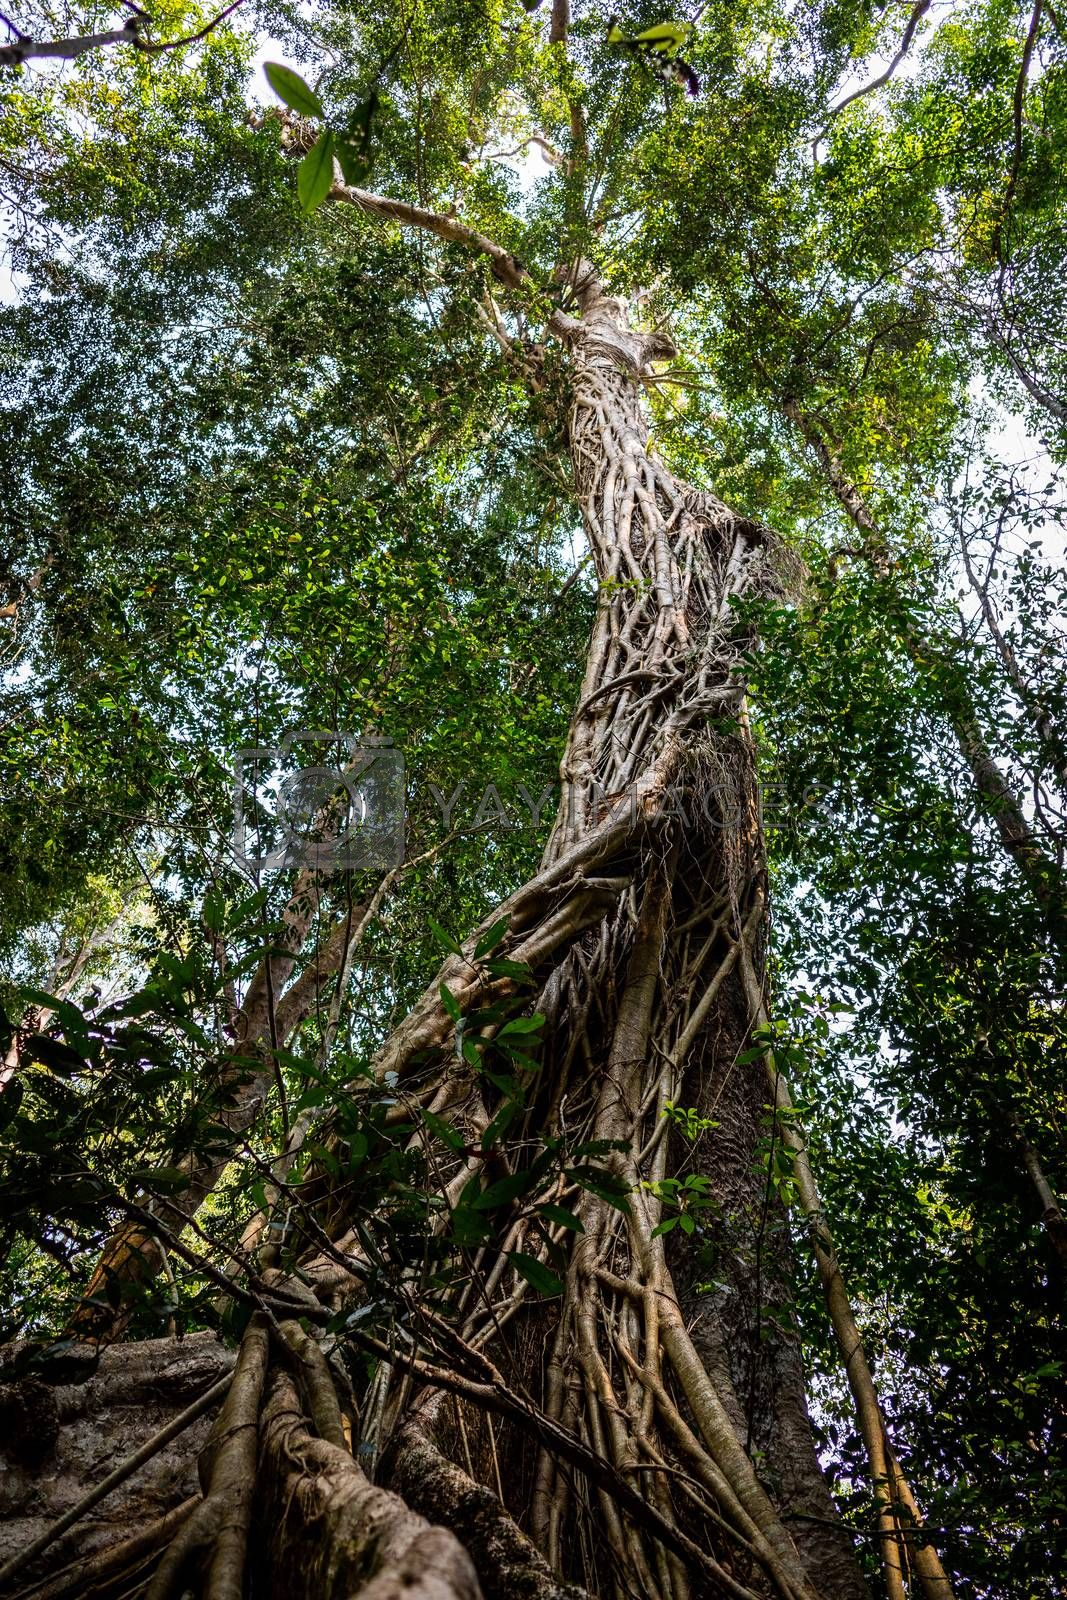 Big old tree trunk inside deep tropical rainforest covered by vine and climber in Khao Yai national park, Thailand.